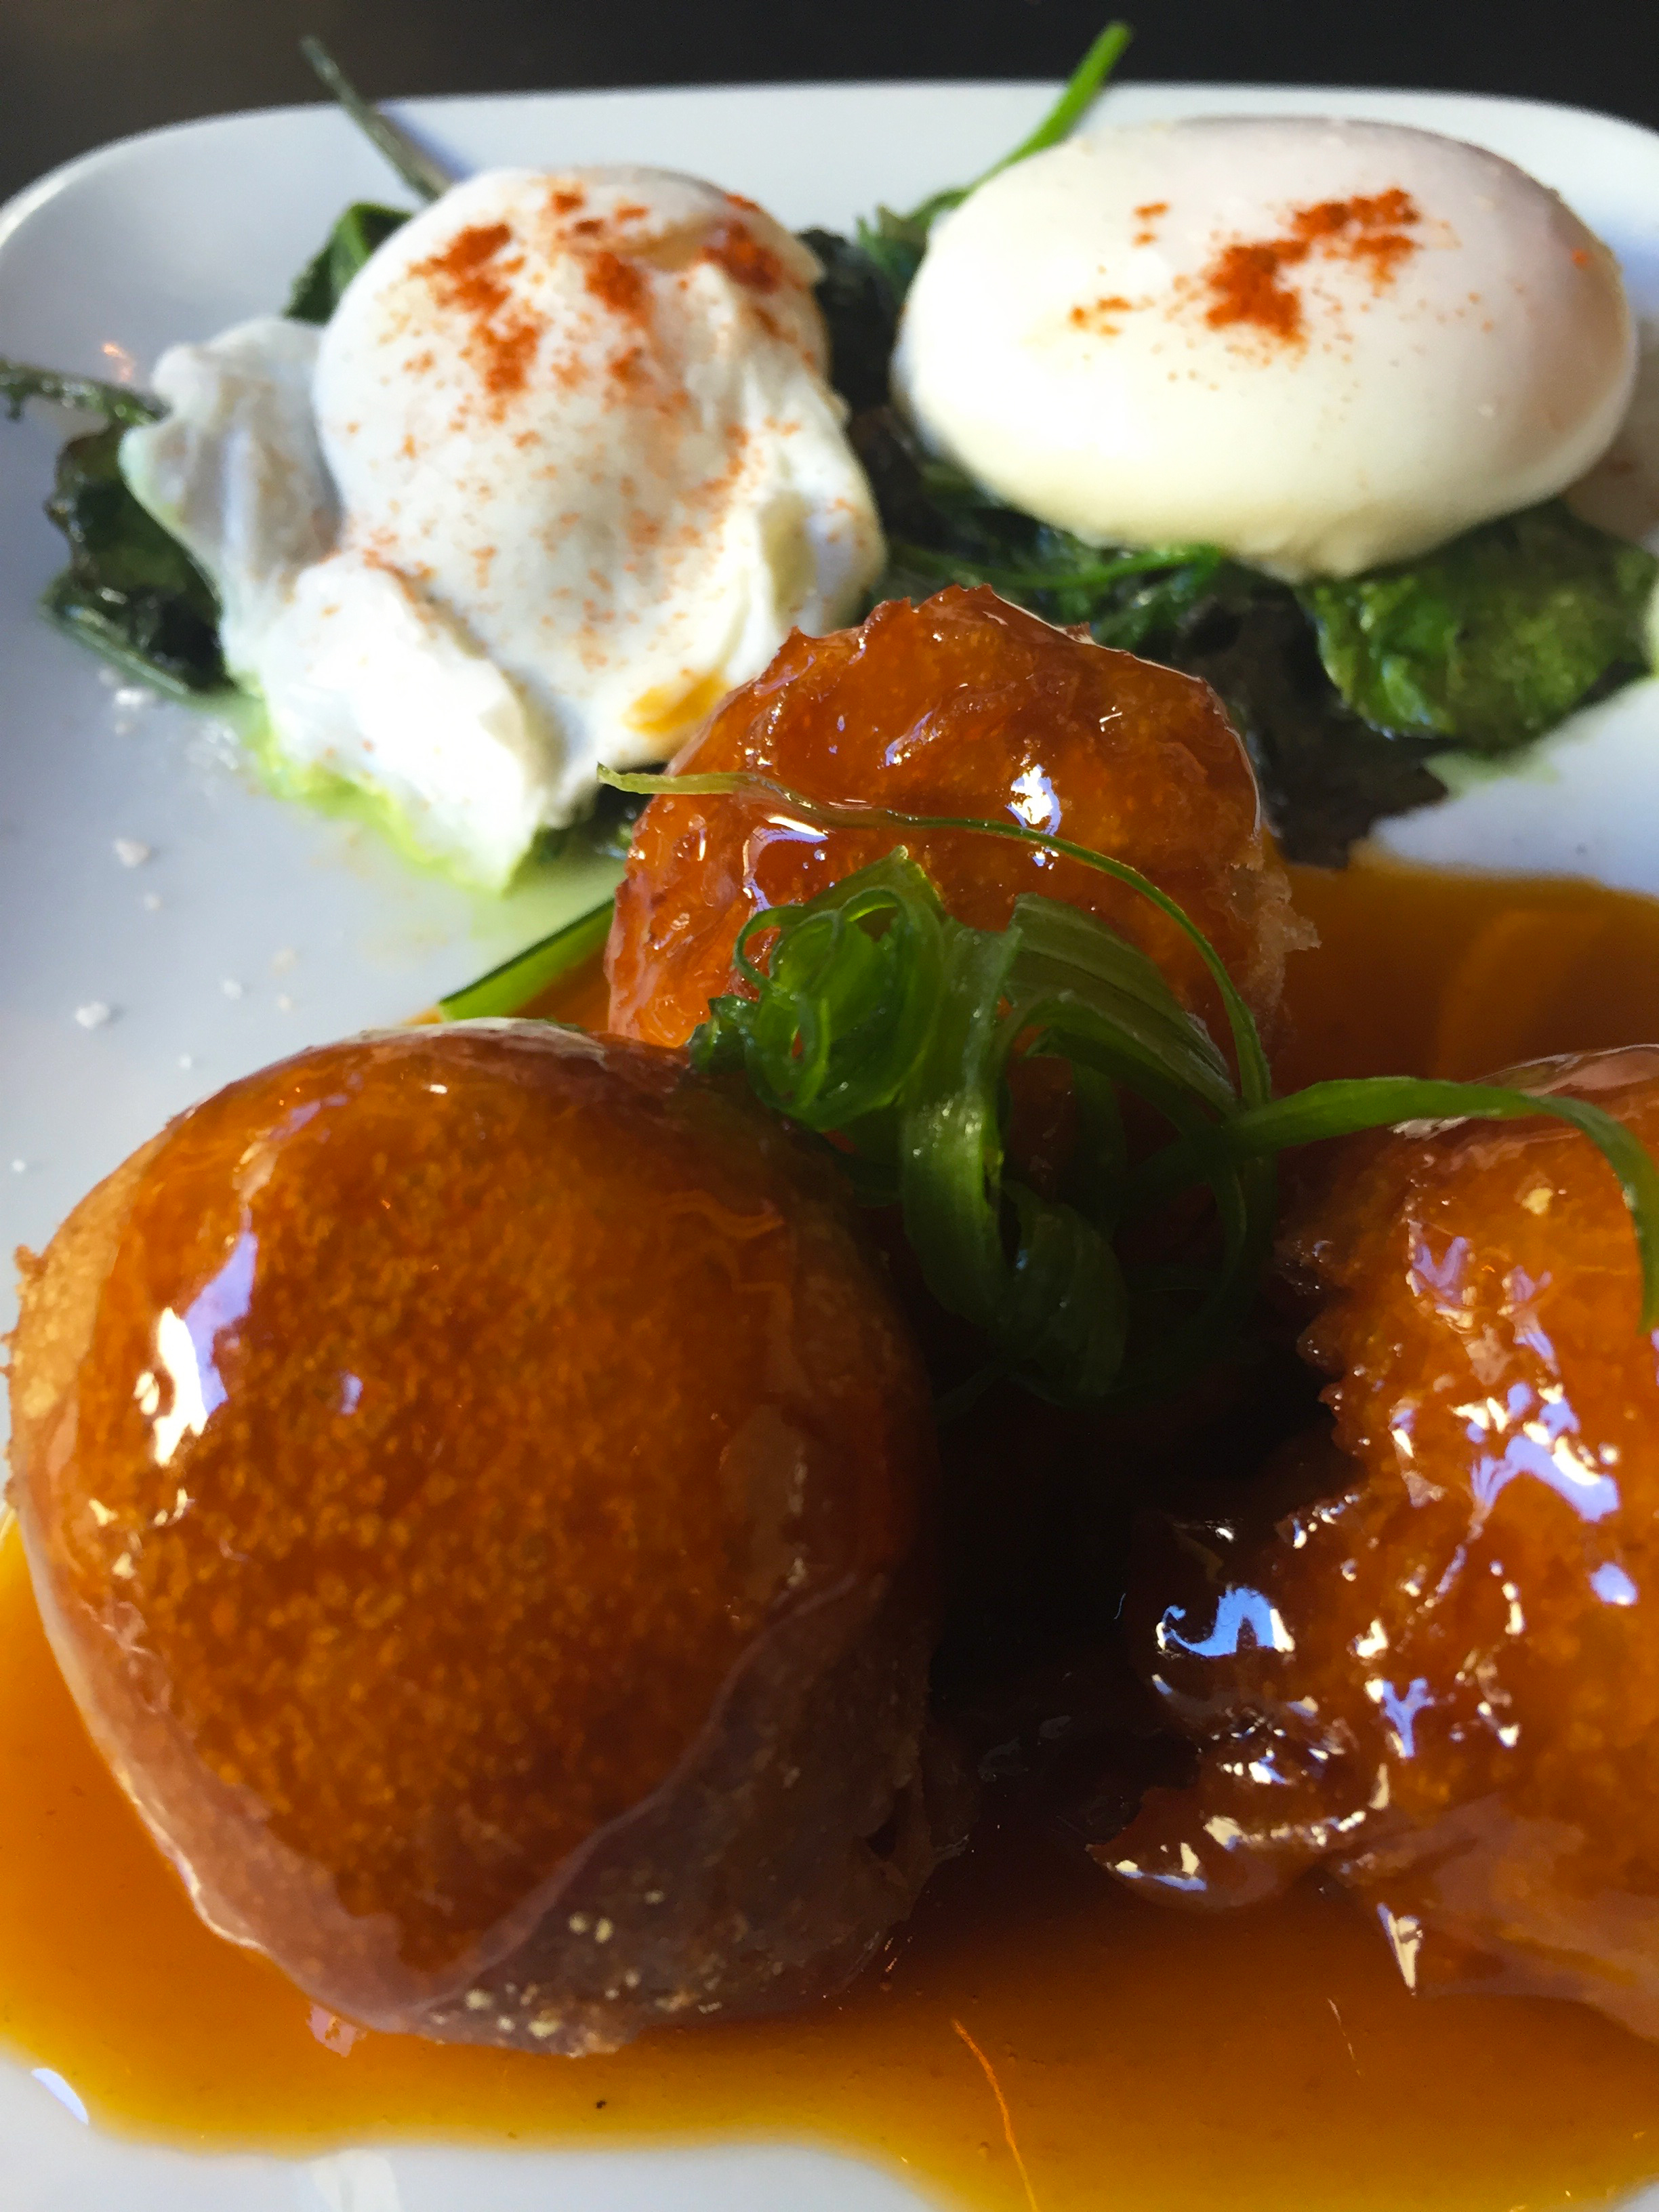 Chicken and Waffle Croquettes with bacon, spicy maple sauce, braised greens and slow cooked eggs.